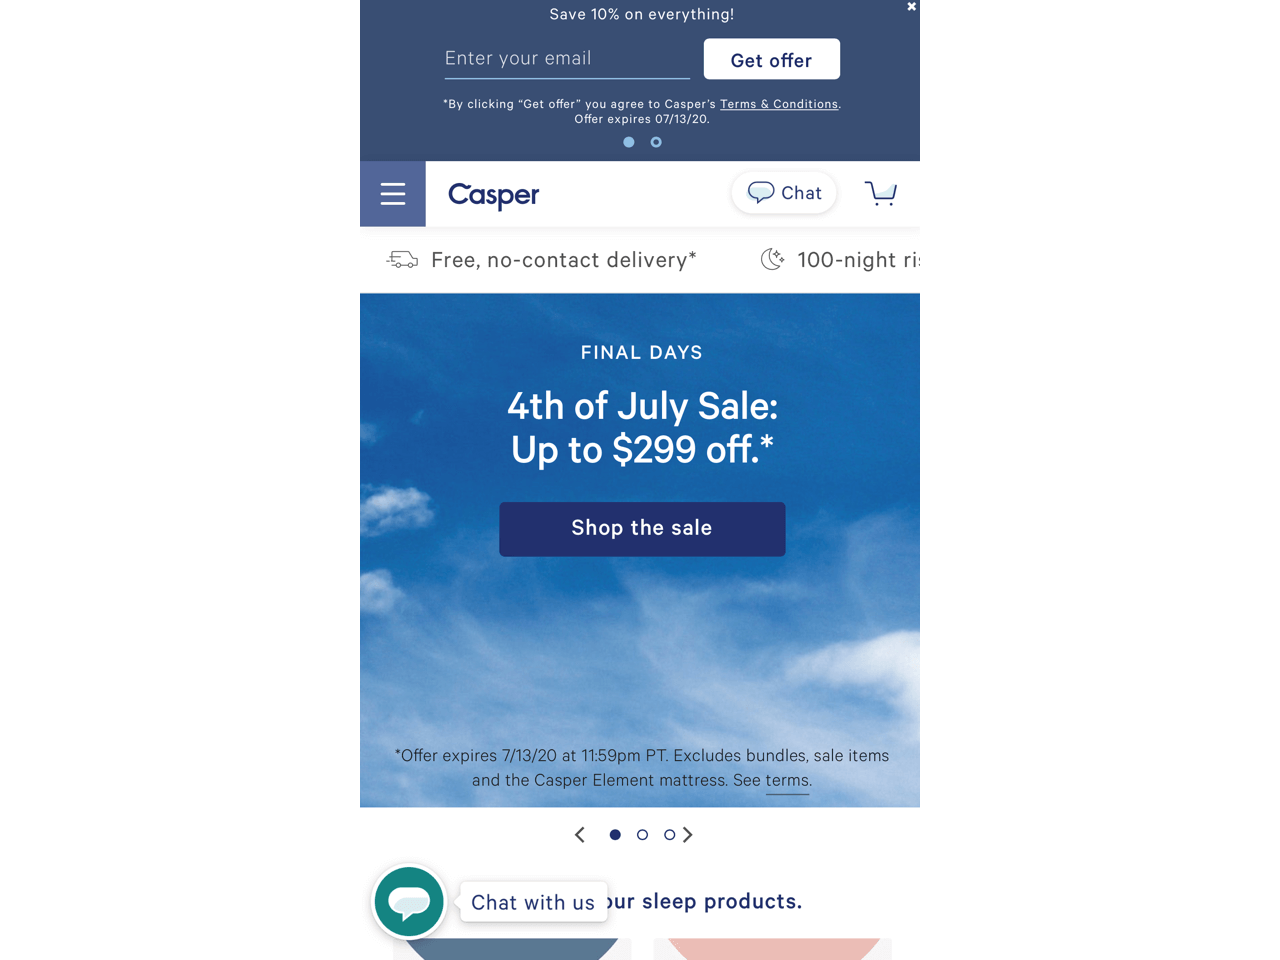 Casper uses a sticky bar to collect emails on mobile